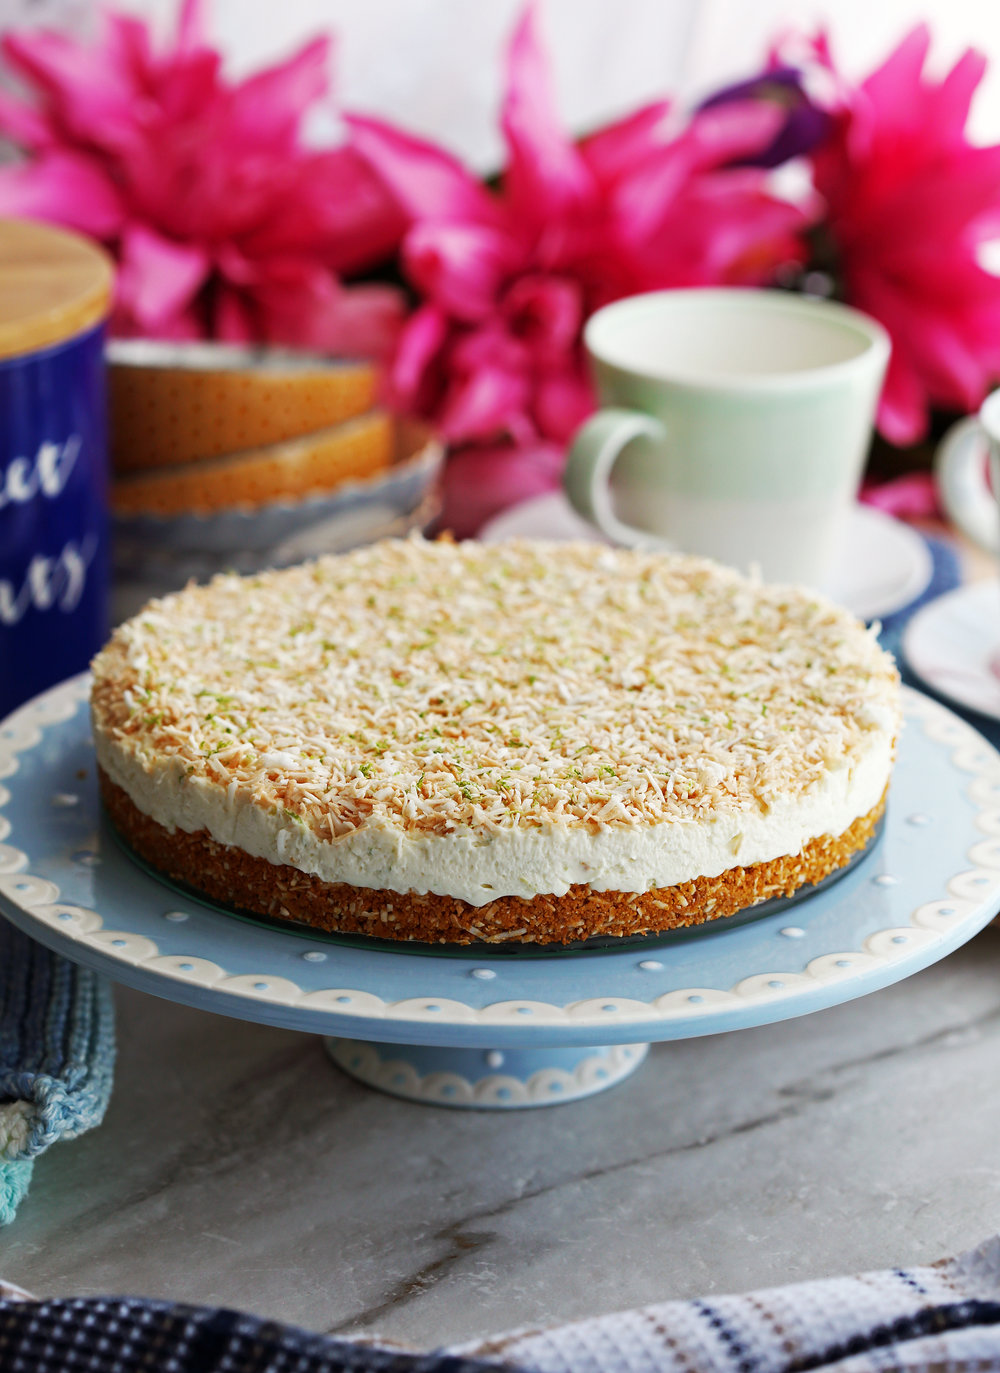 A whole uncut no-bake coconut lime mascarpone cheesecake on a elevated blue cake platter.